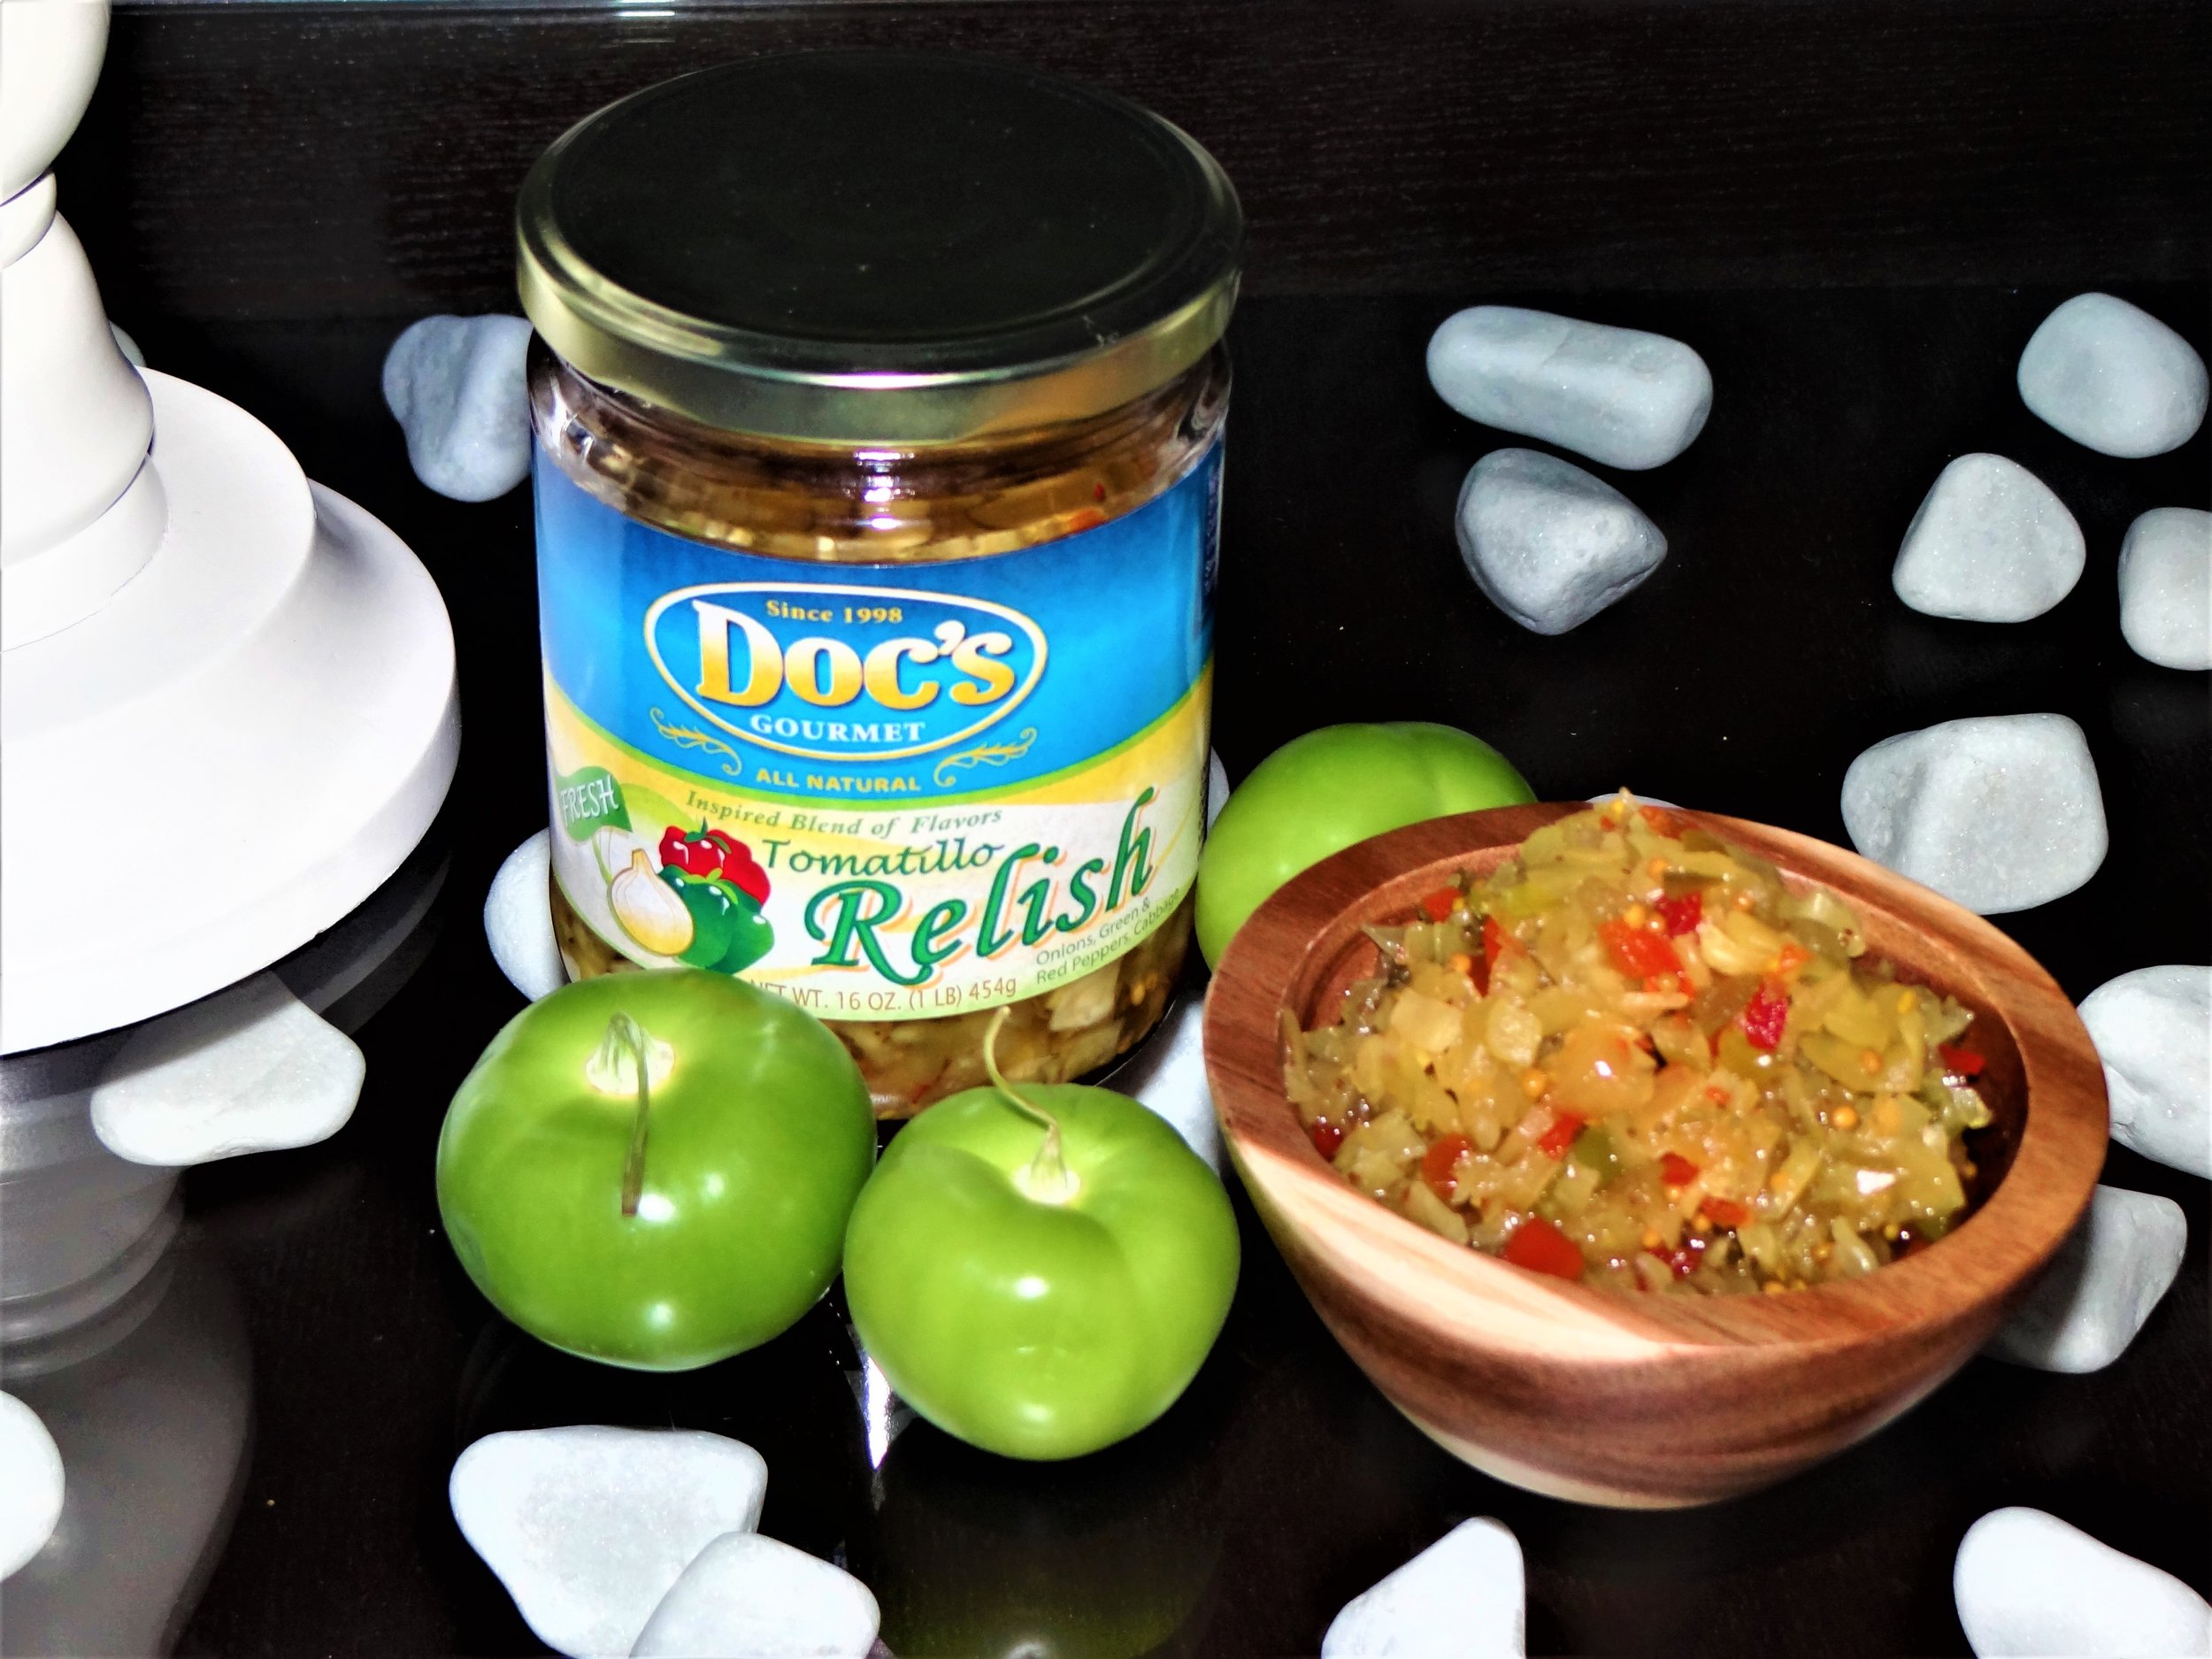 Doc's Gourmet Tomatillo Relish - Doc's Tomatillo Relish is a gourmet product in a class of its own.Use it to replace every relish need you have; from hot dog topping, to your favorite tuna and potato salads.Keep this special product under lock and key... Once your family and friends taste this relish, it may go missing.#AllNatural#GlutenFree#NoHighFructoseCornSyrup